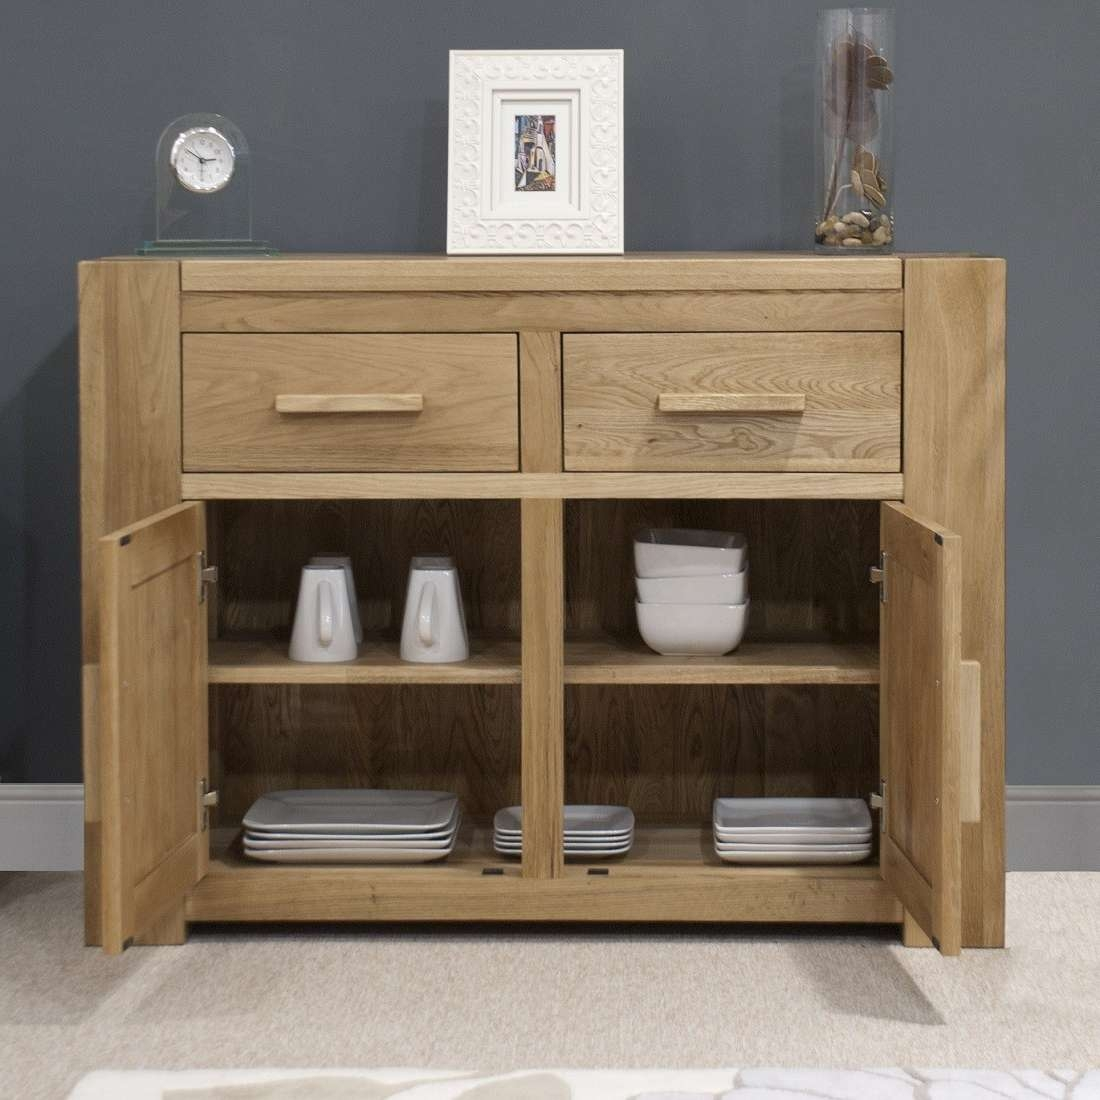 Trend Solid Oak Small 2 Door Sideboard | Oak Furniture Uk Within 2 Door Sideboards (View 17 of 20)